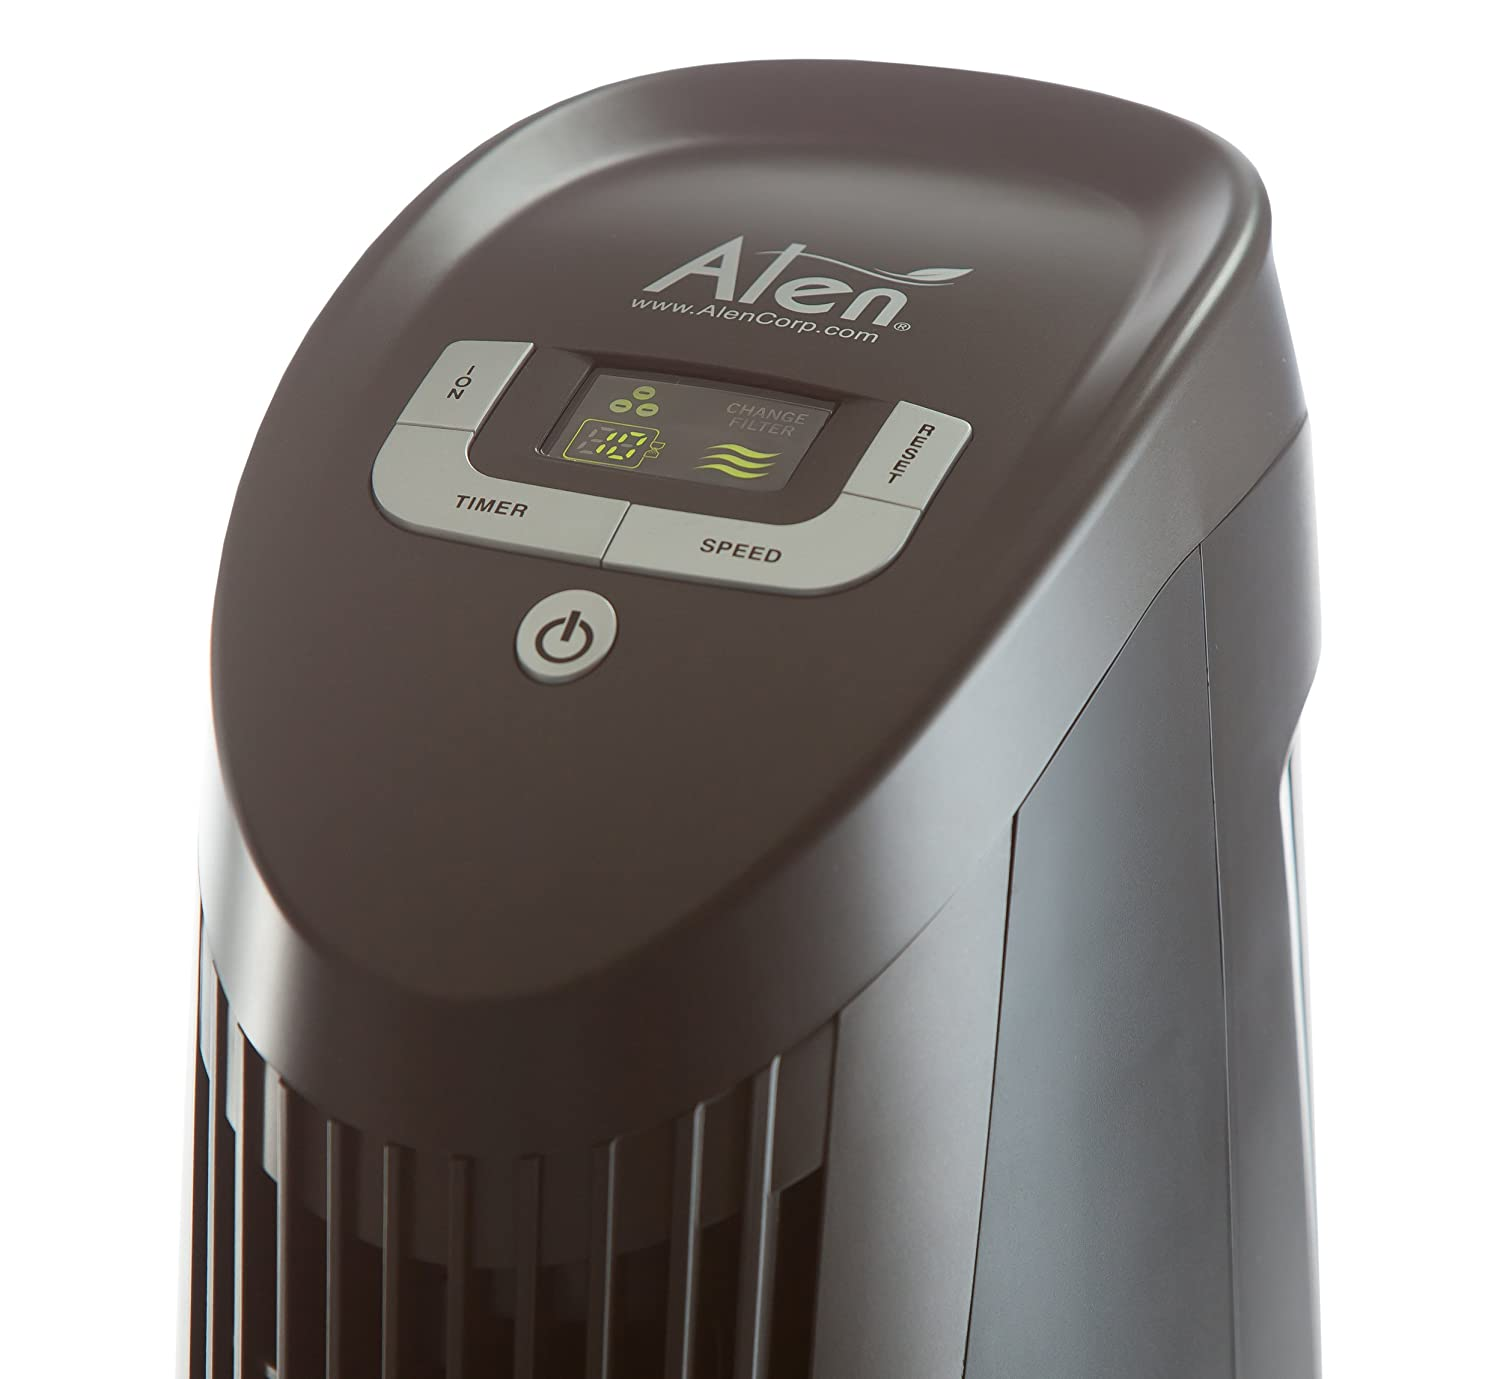 alen t500 tower air purifier review yay or nay homey air. Black Bedroom Furniture Sets. Home Design Ideas